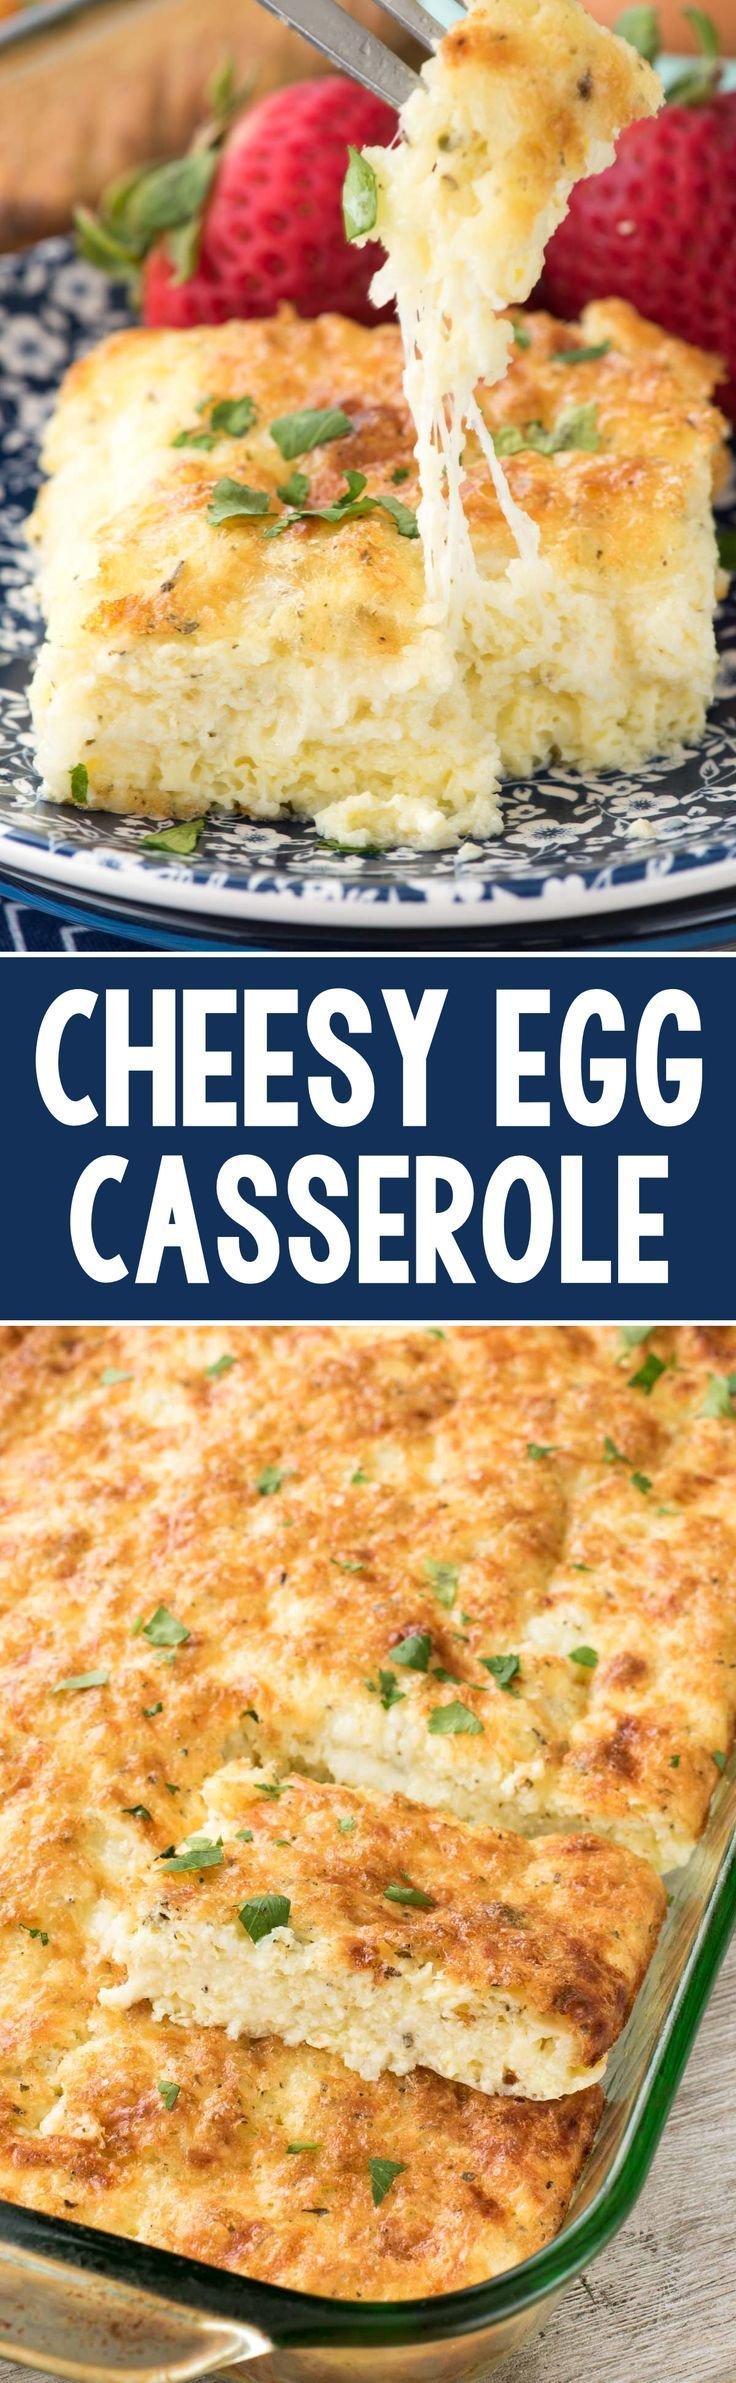 Buttery Cheesy Egg Casserole - this recipe is the perfect baked egg recipe for brunch! It's full of cheese and spices and everyone loves it.